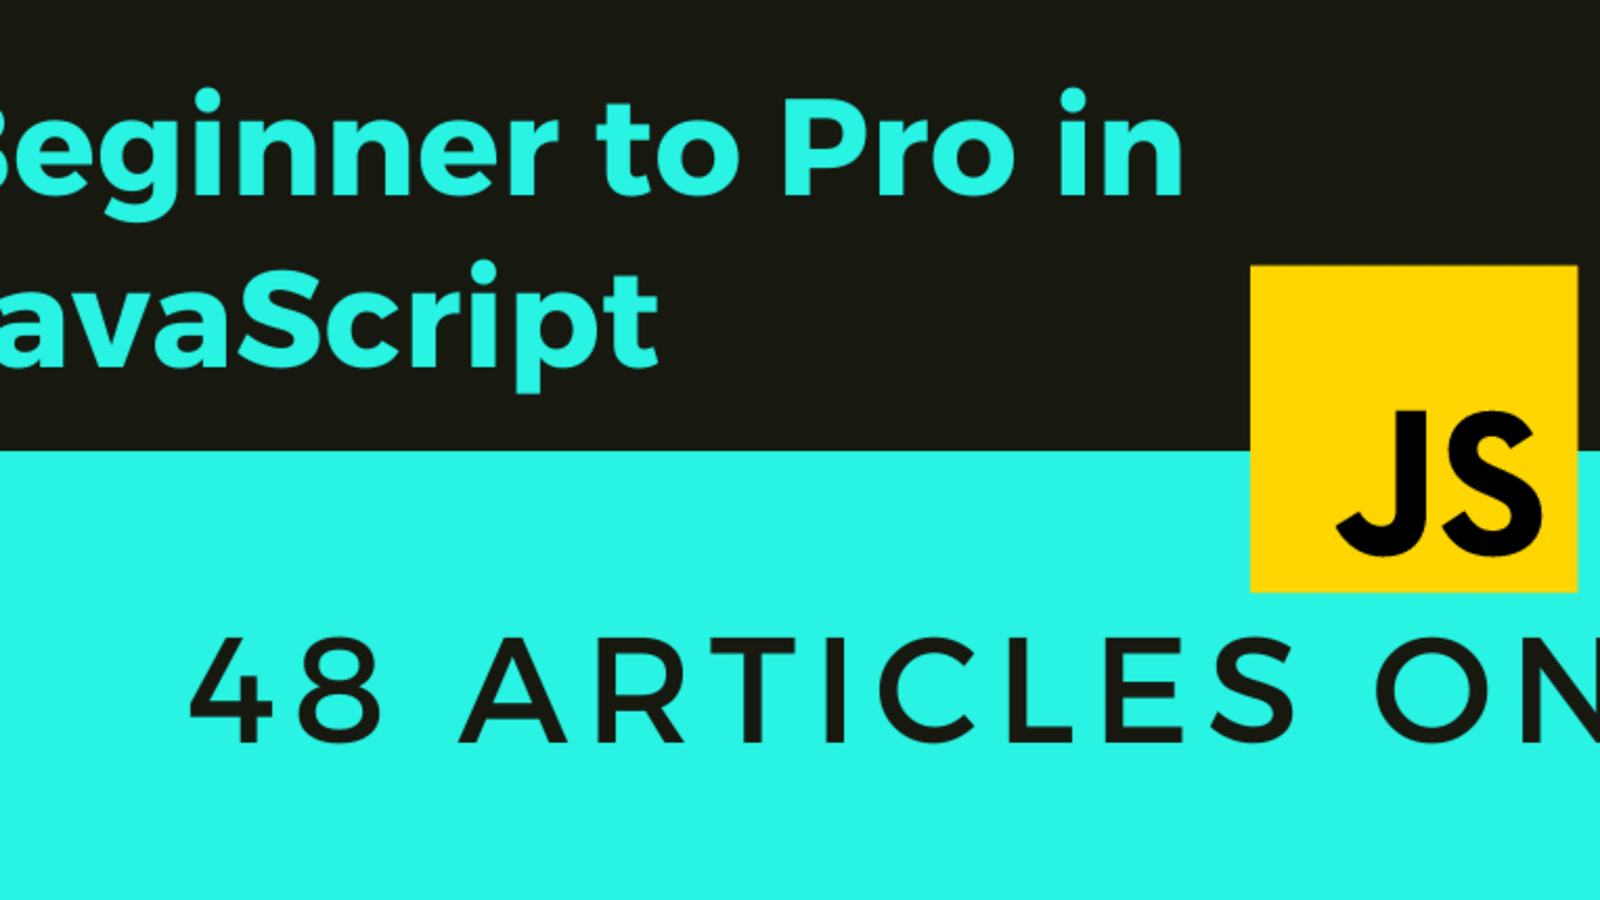 20 Articles to go beginner to pro in JavaScript   DEV Community